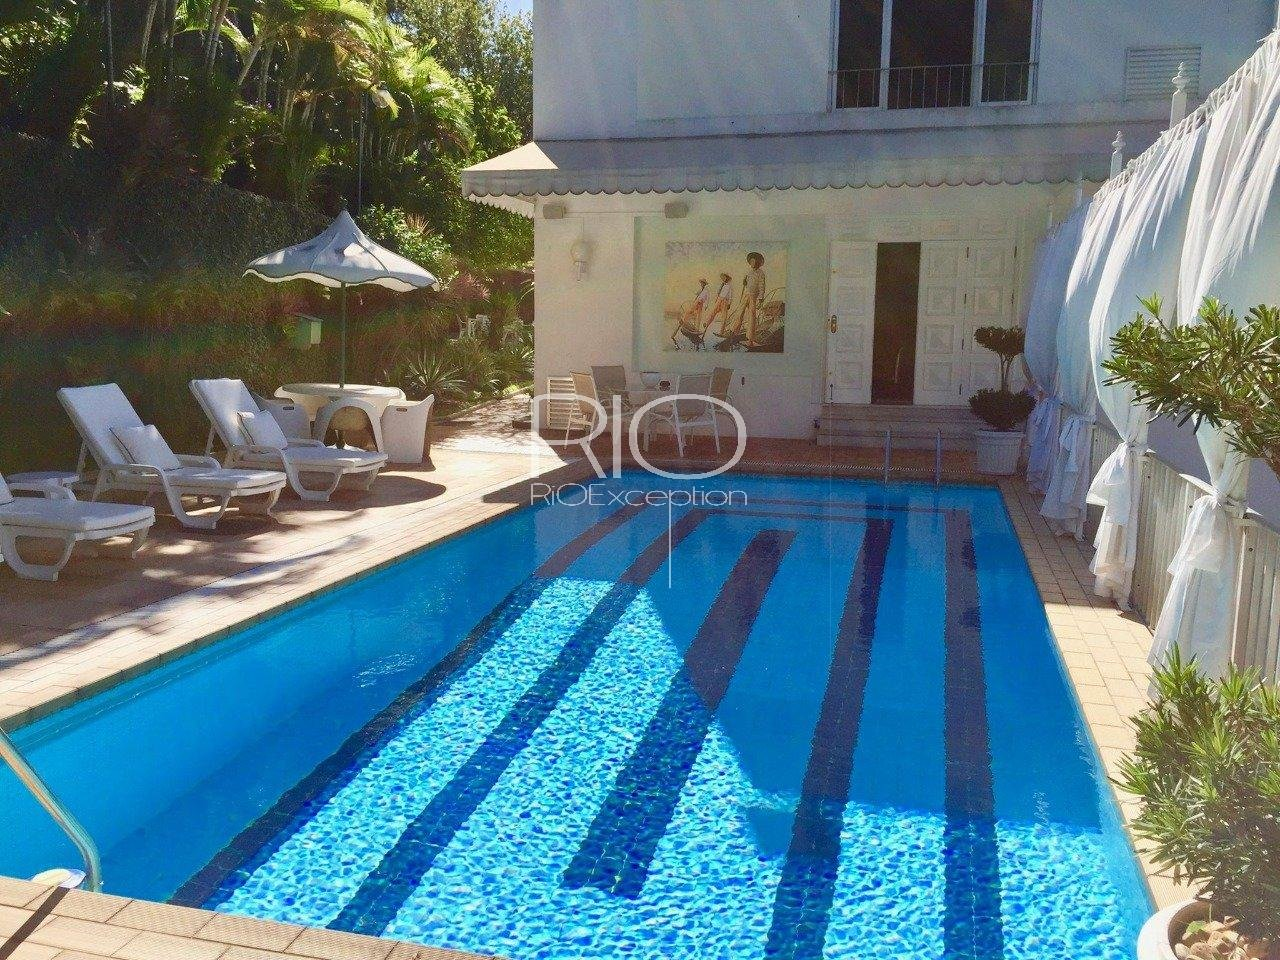 Cosme-Velho - Sumptuous contemporary villa with swimming pool and cinema room !